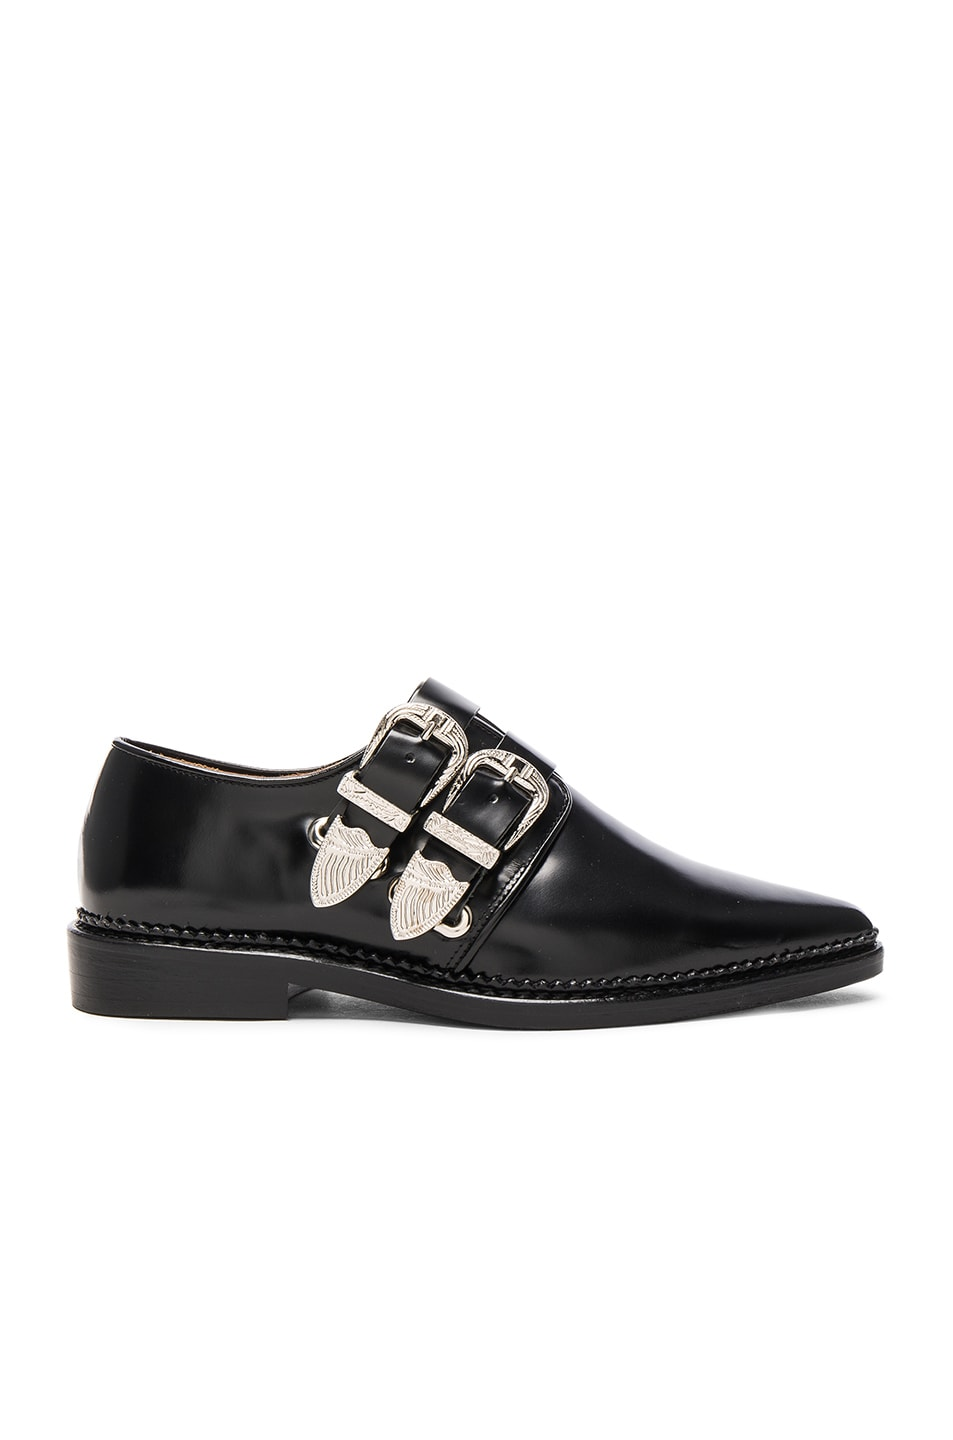 Image 1 of TOGA PULLA Buckled Leather Oxfords in Black Polido